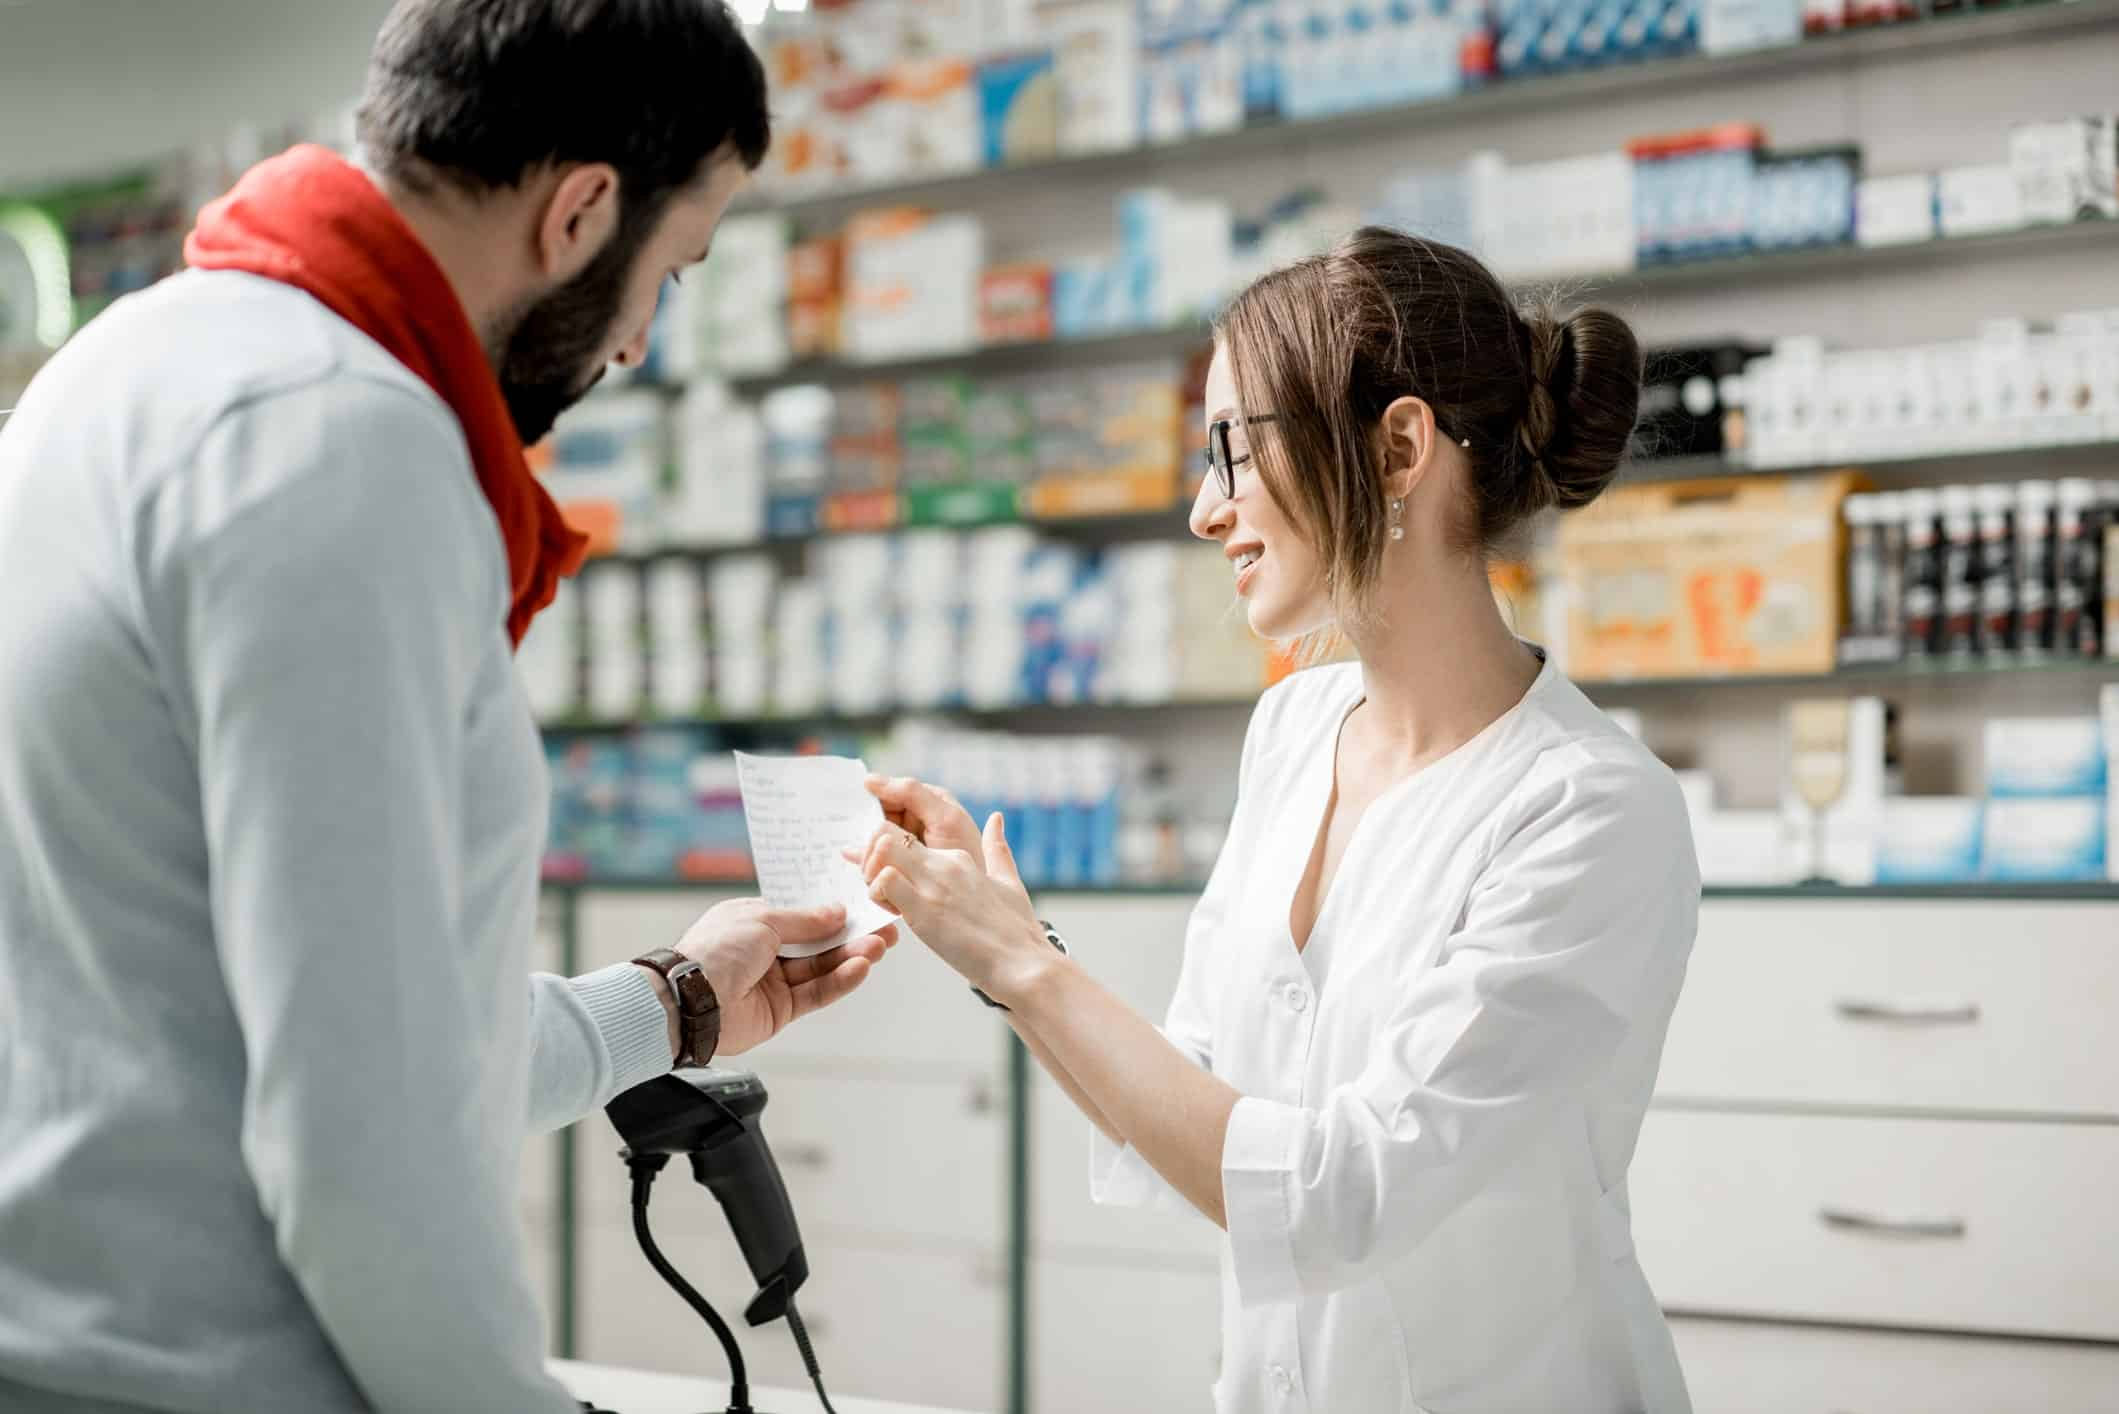 What's the Difference Between a Recommendation and a Prescription